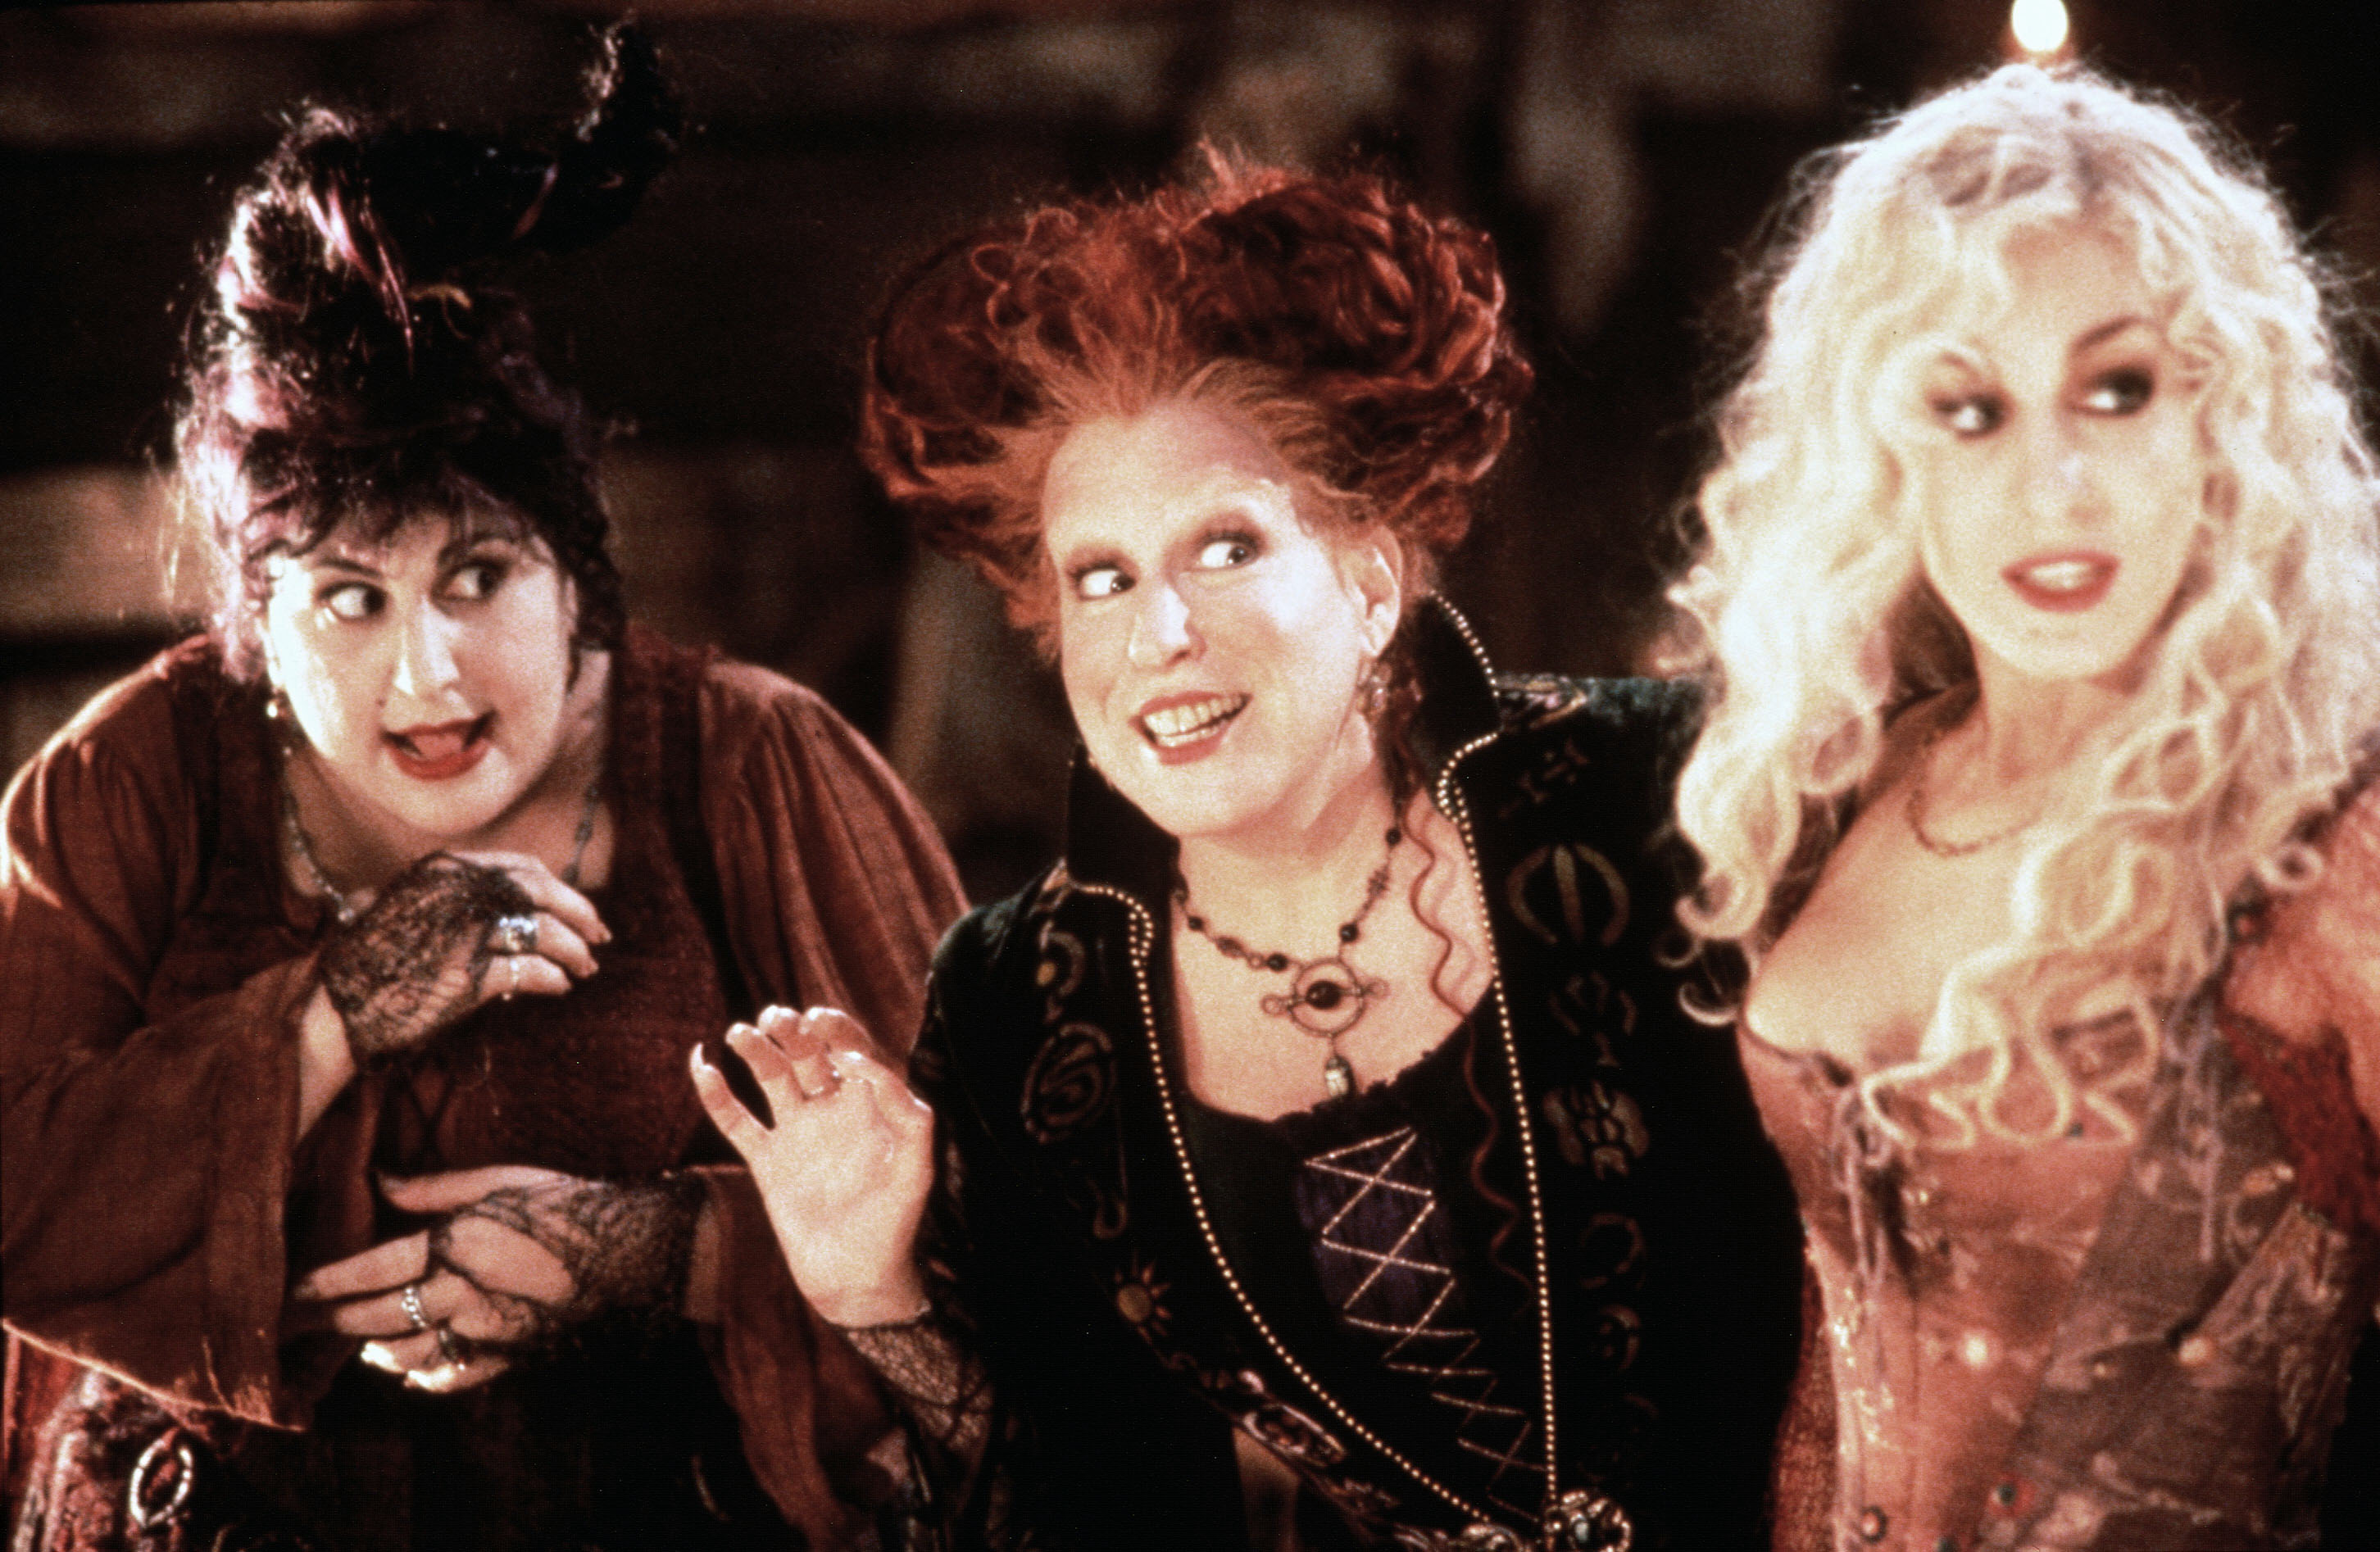 With Hocus Pocus Right Behind Tenet, Its Another Weird Box-Office Weekend